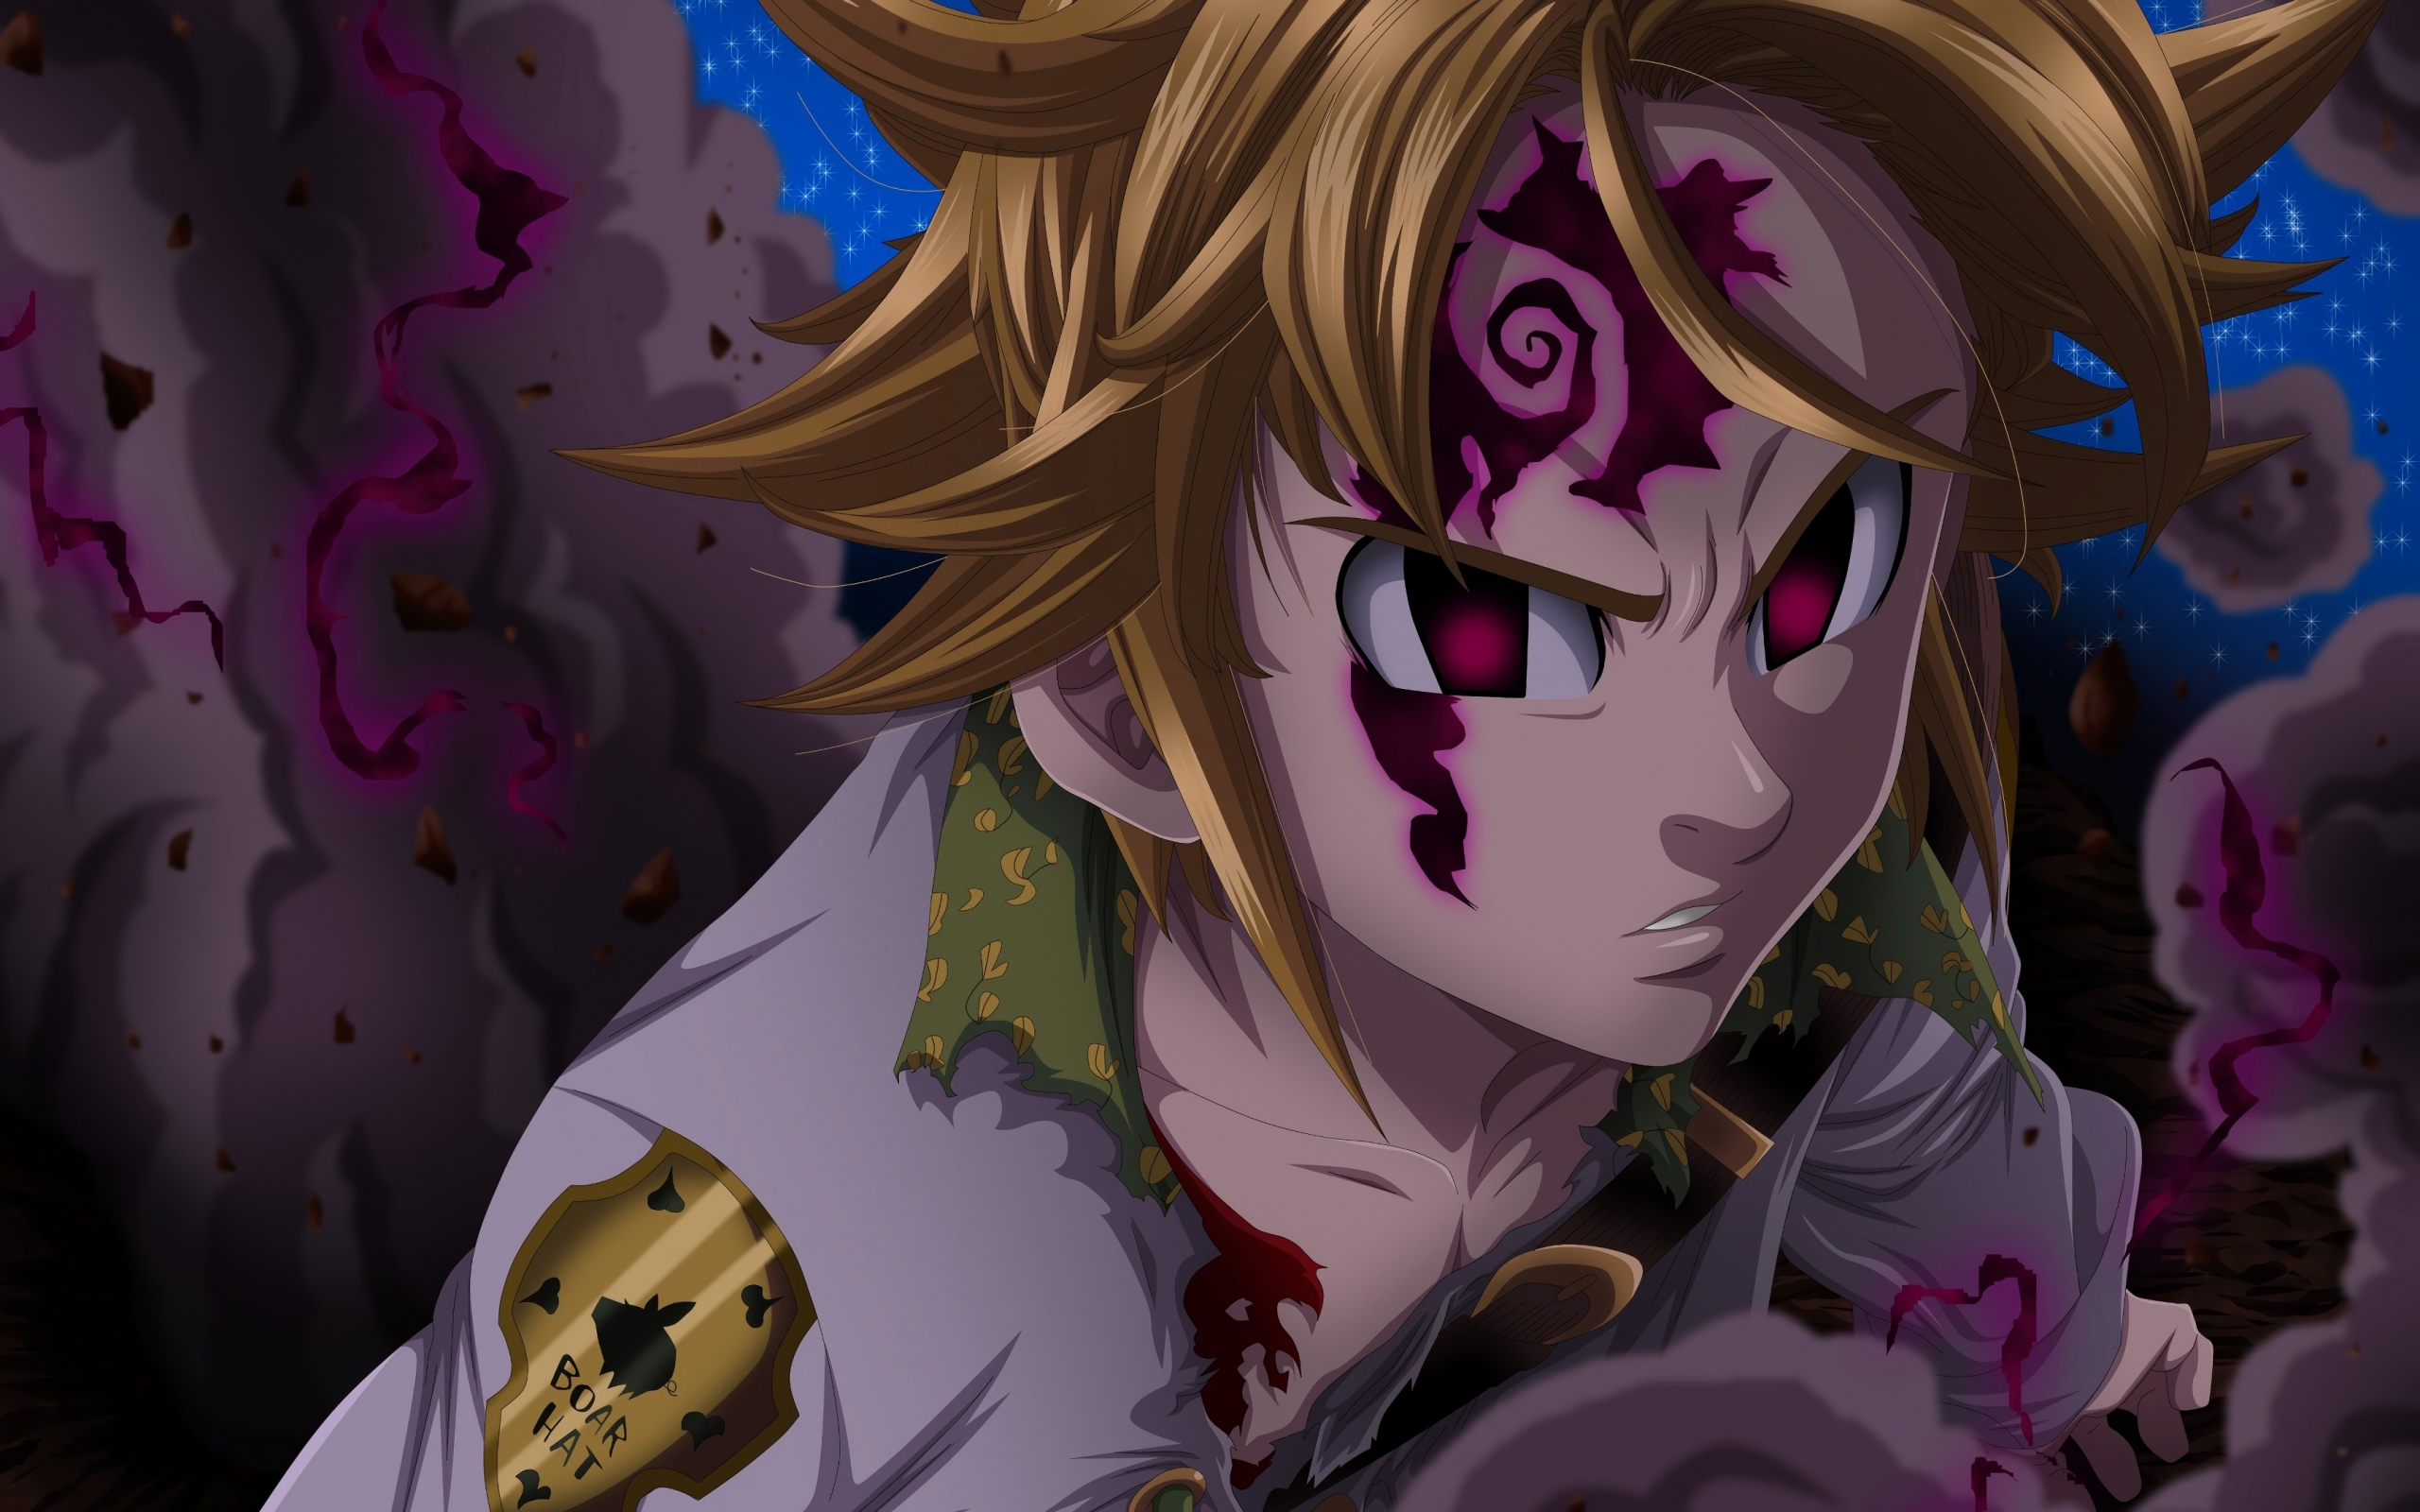 Wallpaper Meliodas Demon Mode: Wallpaper Of Meliodas, Anime, Demon, The Seven Deadly Sins